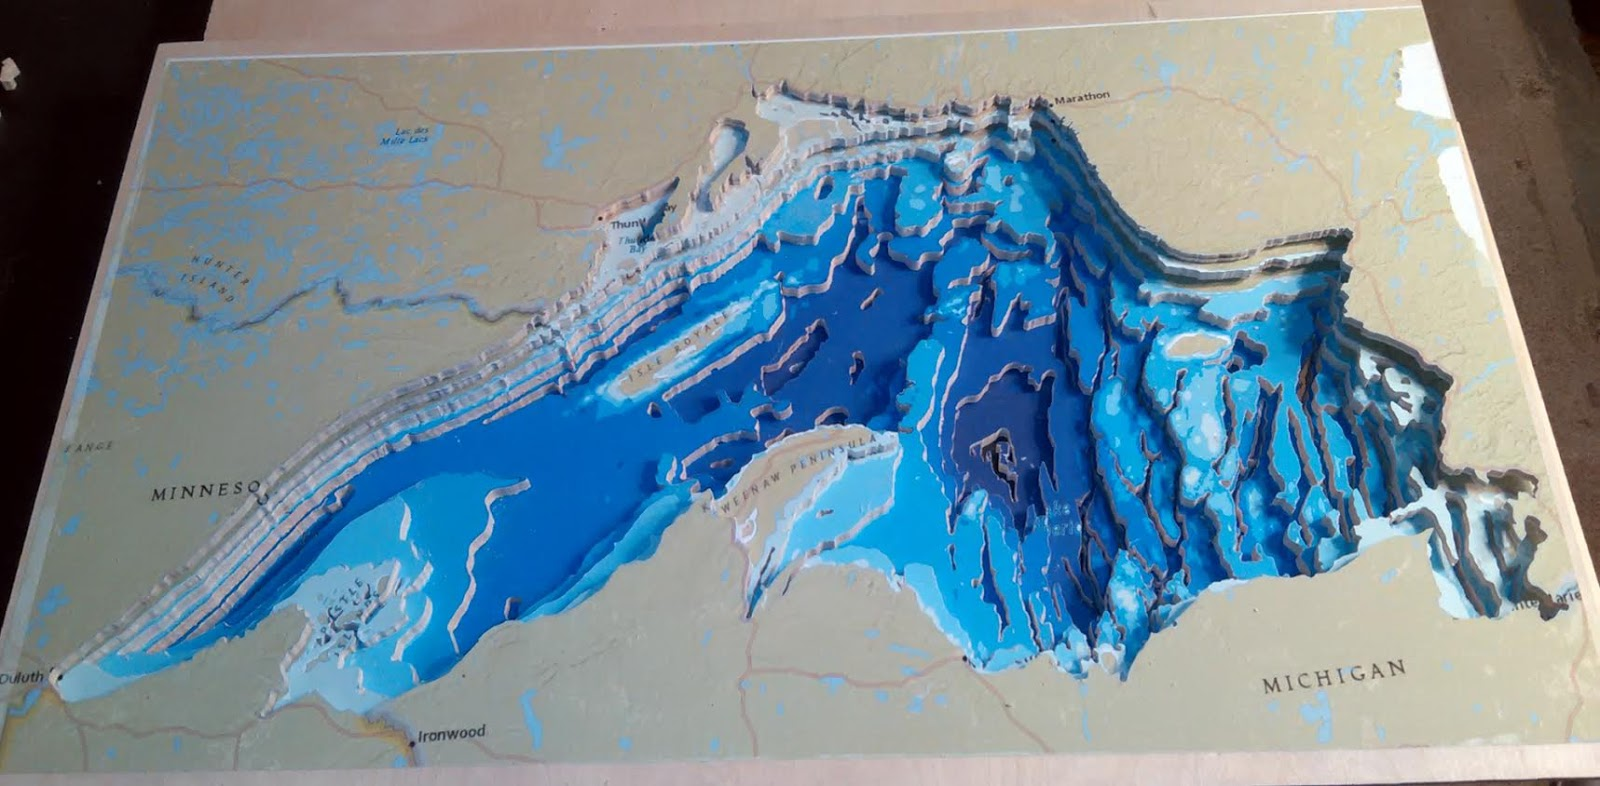 okla state campus map with Contour Maps Of Lake Superior on Photo gallery furthermore ViewArticle additionally ViewArticle together with Big Win Tiny Colt besides University Of Oklahoma C us Map.